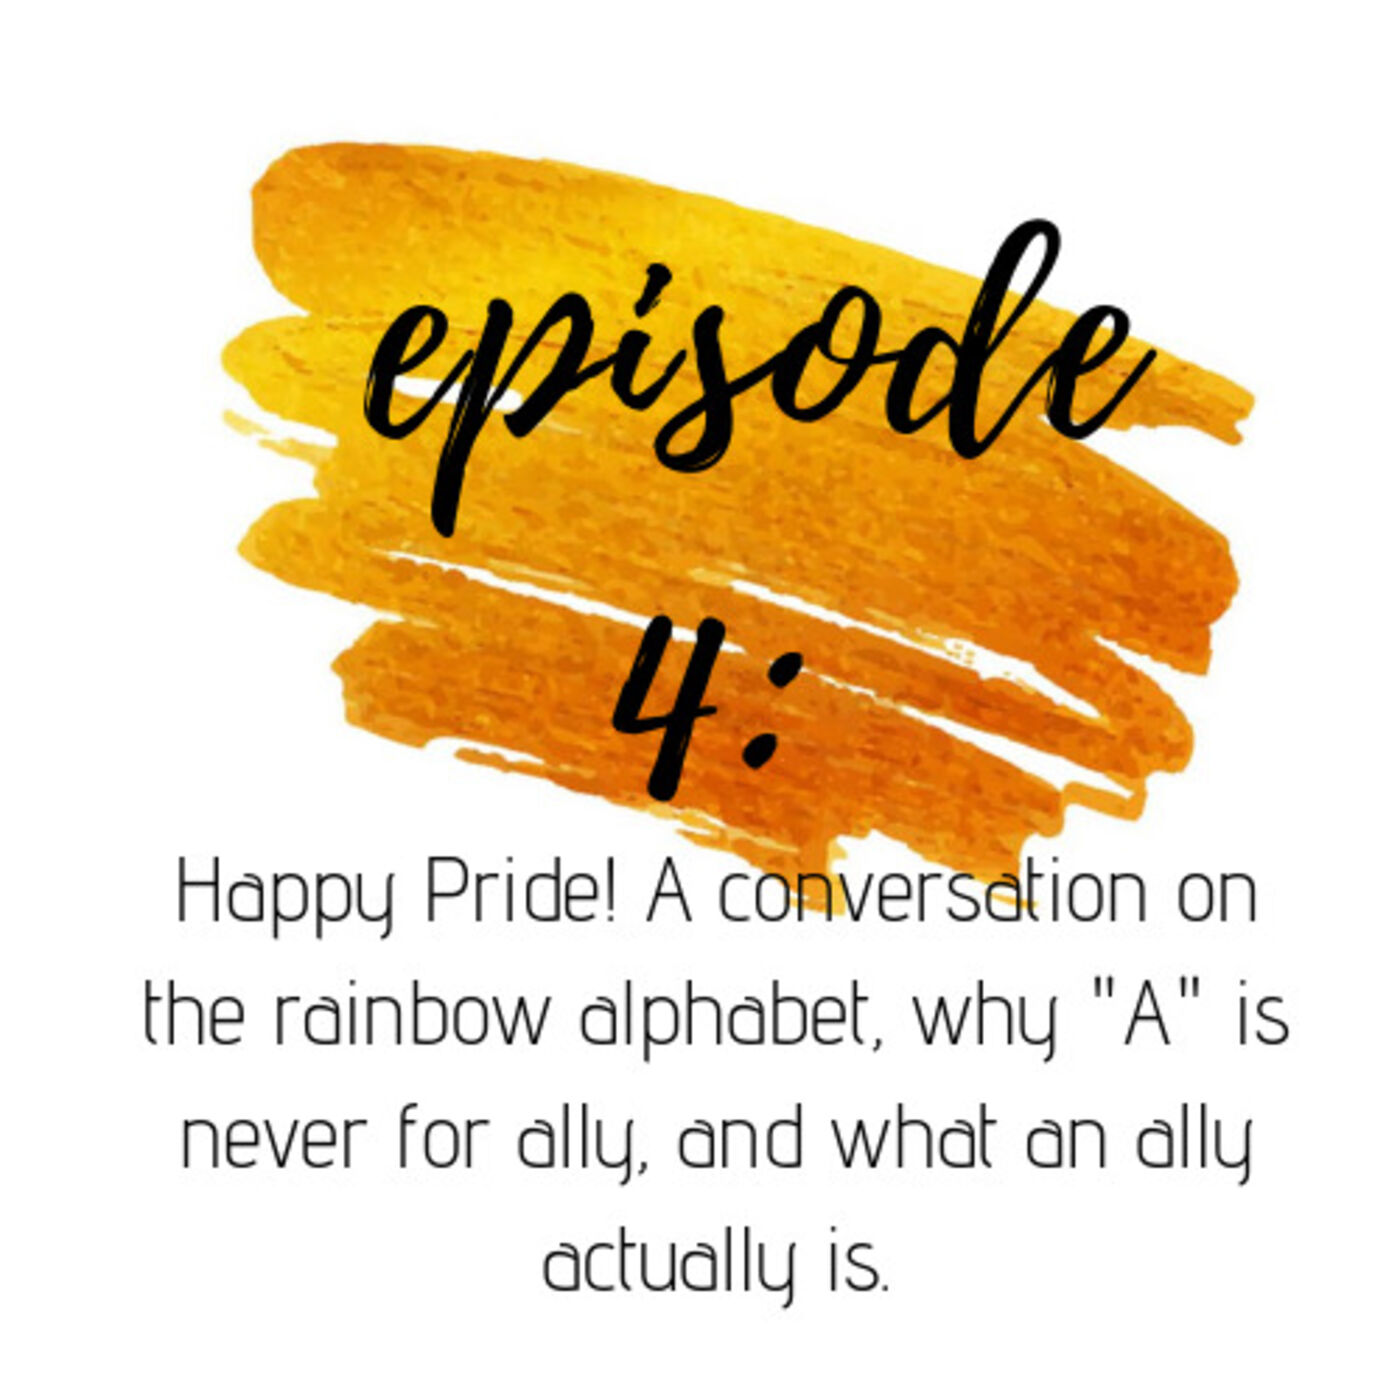 Let's Talk about Pride!